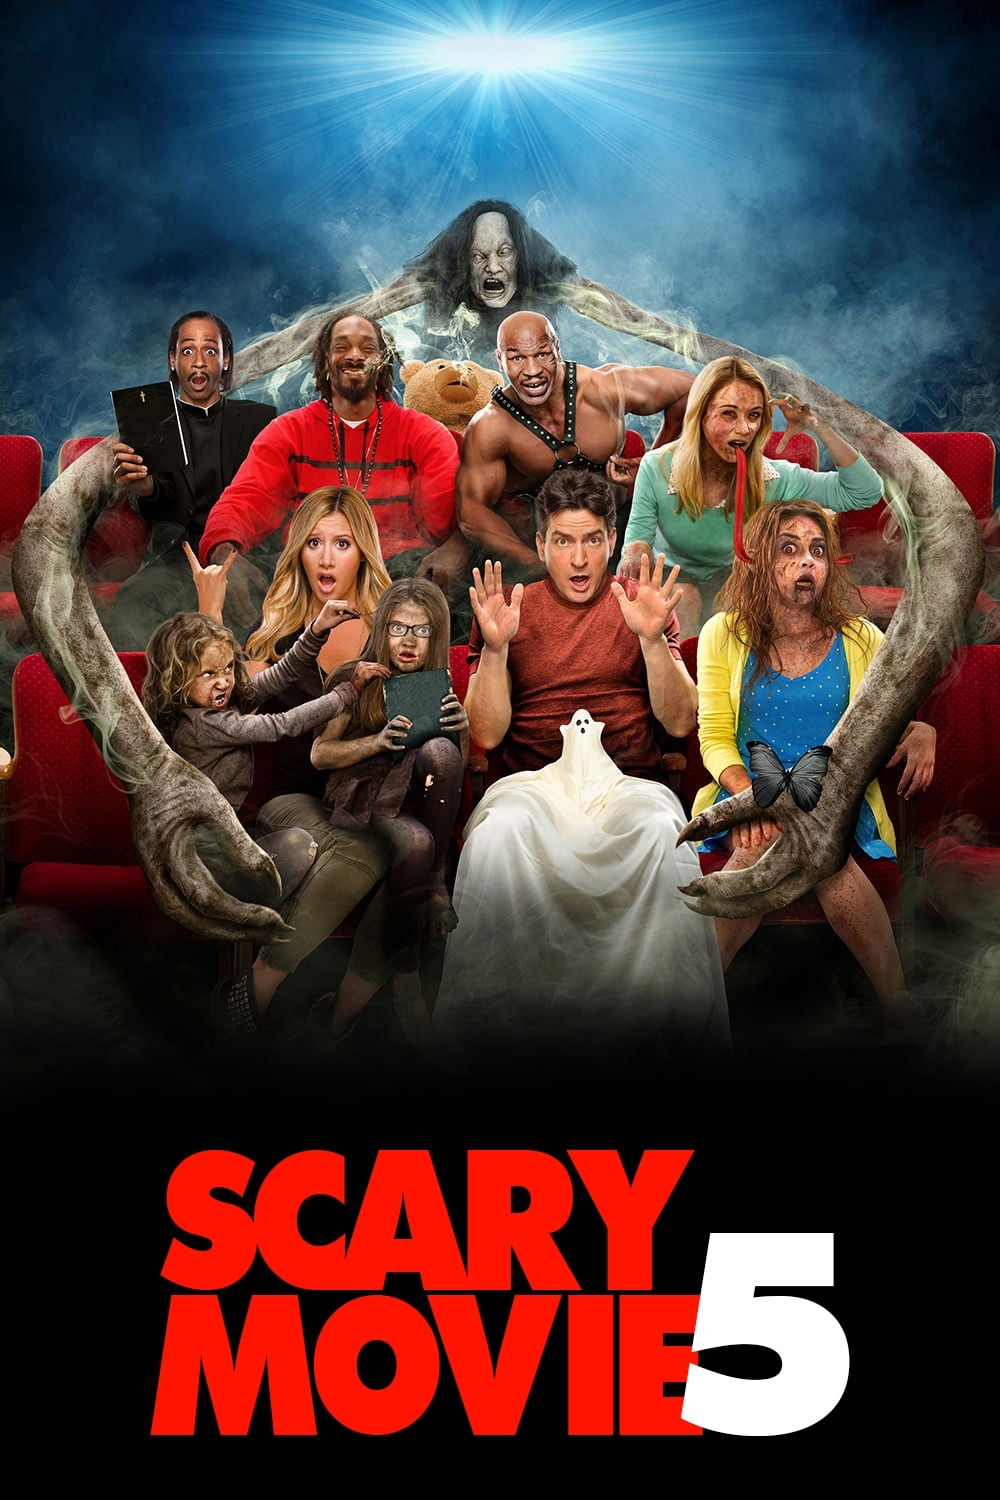 Scary Movie 5 Ganzer Film